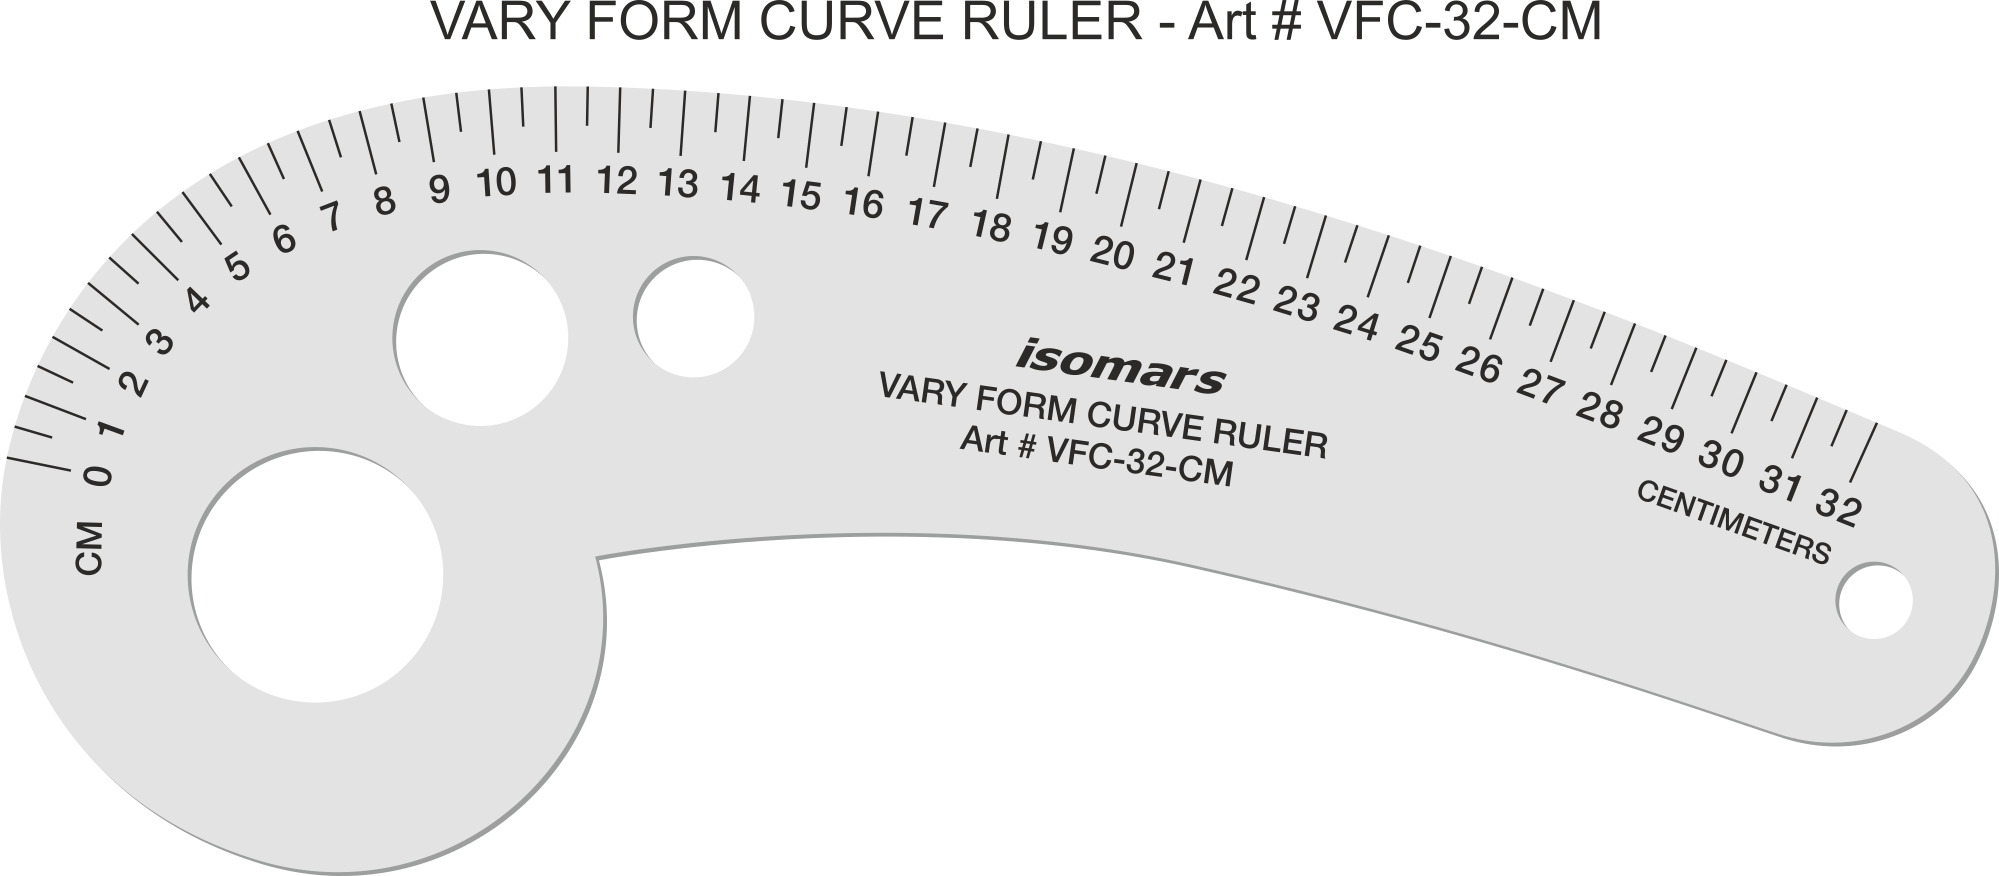 This is a picture of Printable French Curve inside labelled